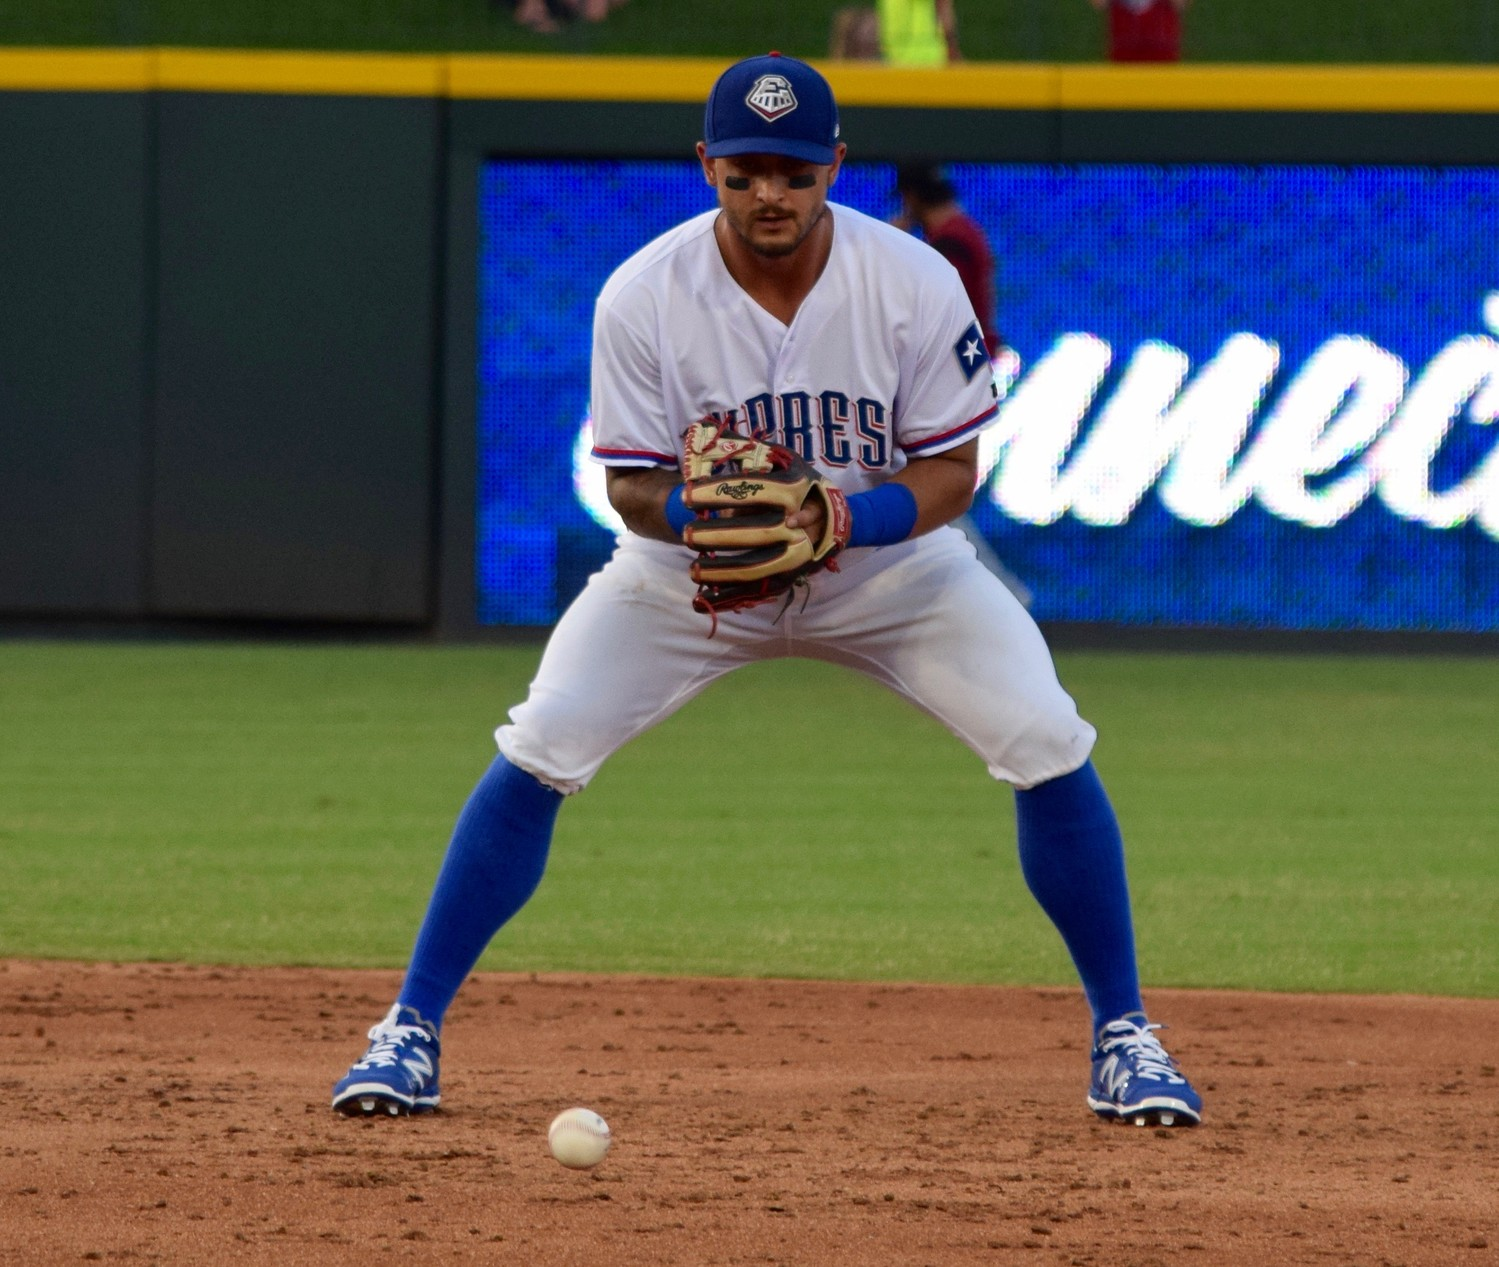 Christian Lopes was named the PCL Player of the Week recording multi-hit games in six straight games and combined to hit 12-20 earlier this season.